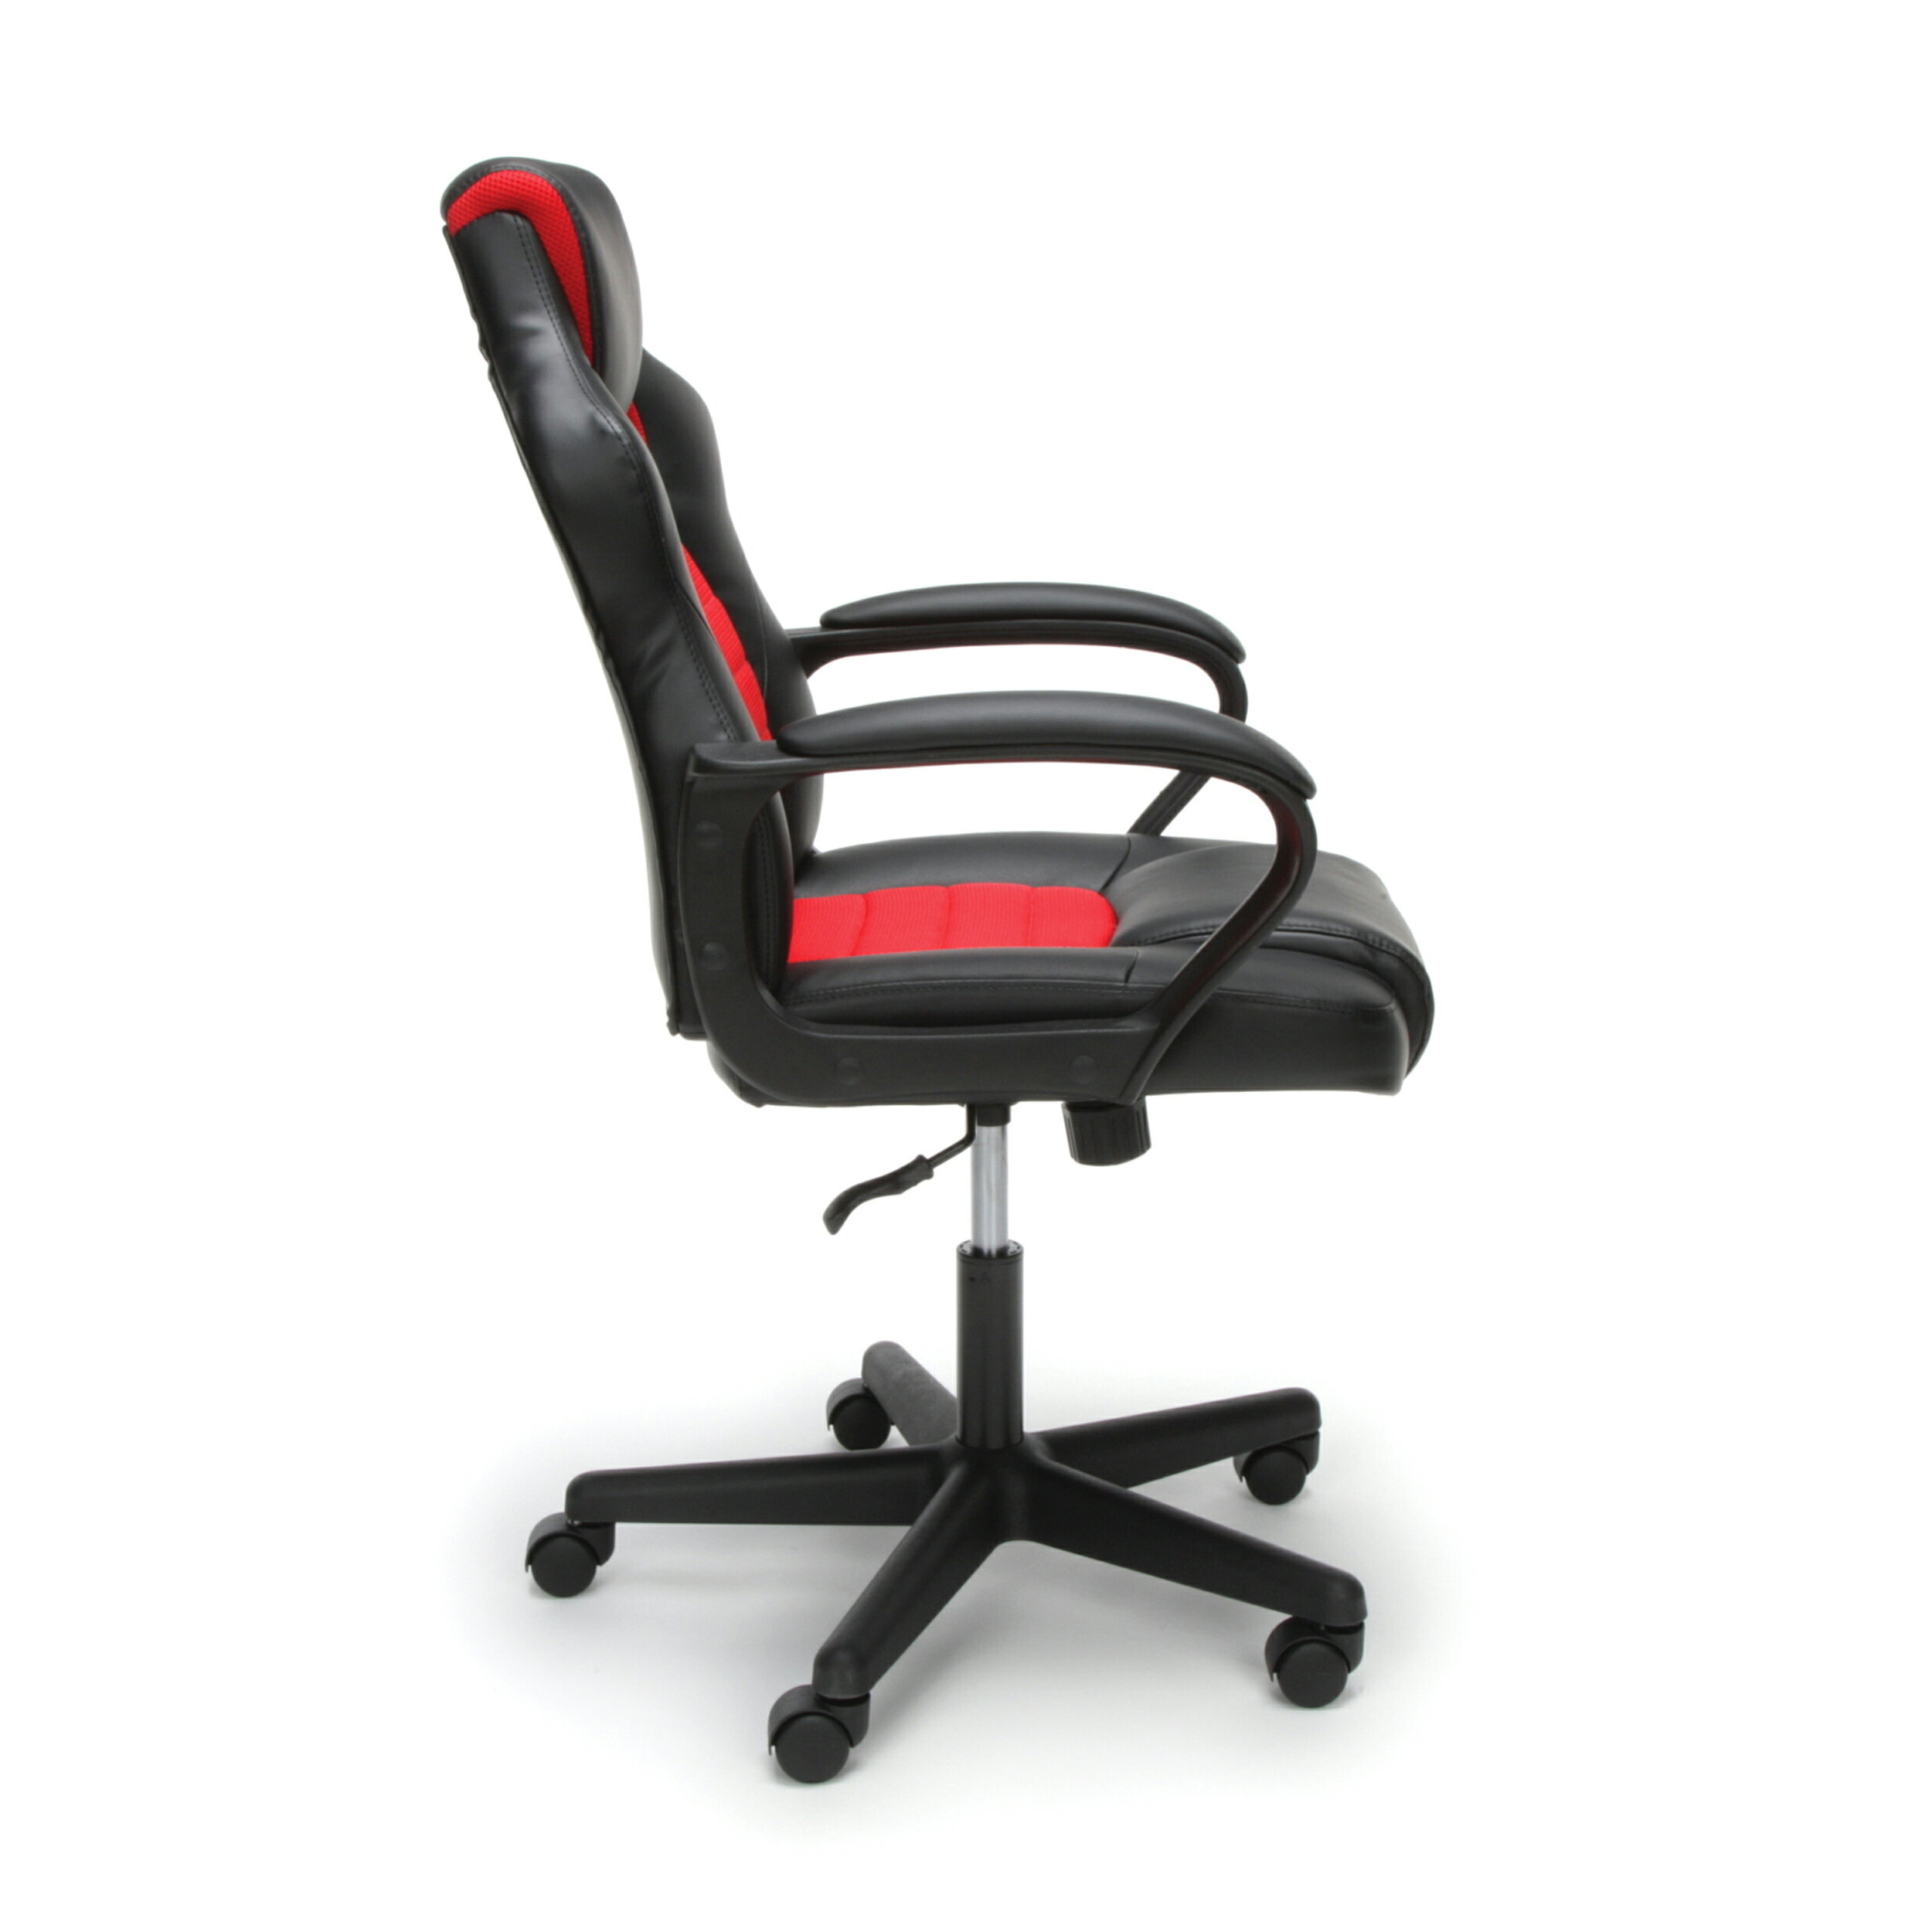 Essentials by OFM ESS-3083 Racing Style Gaming Chair, Red 4